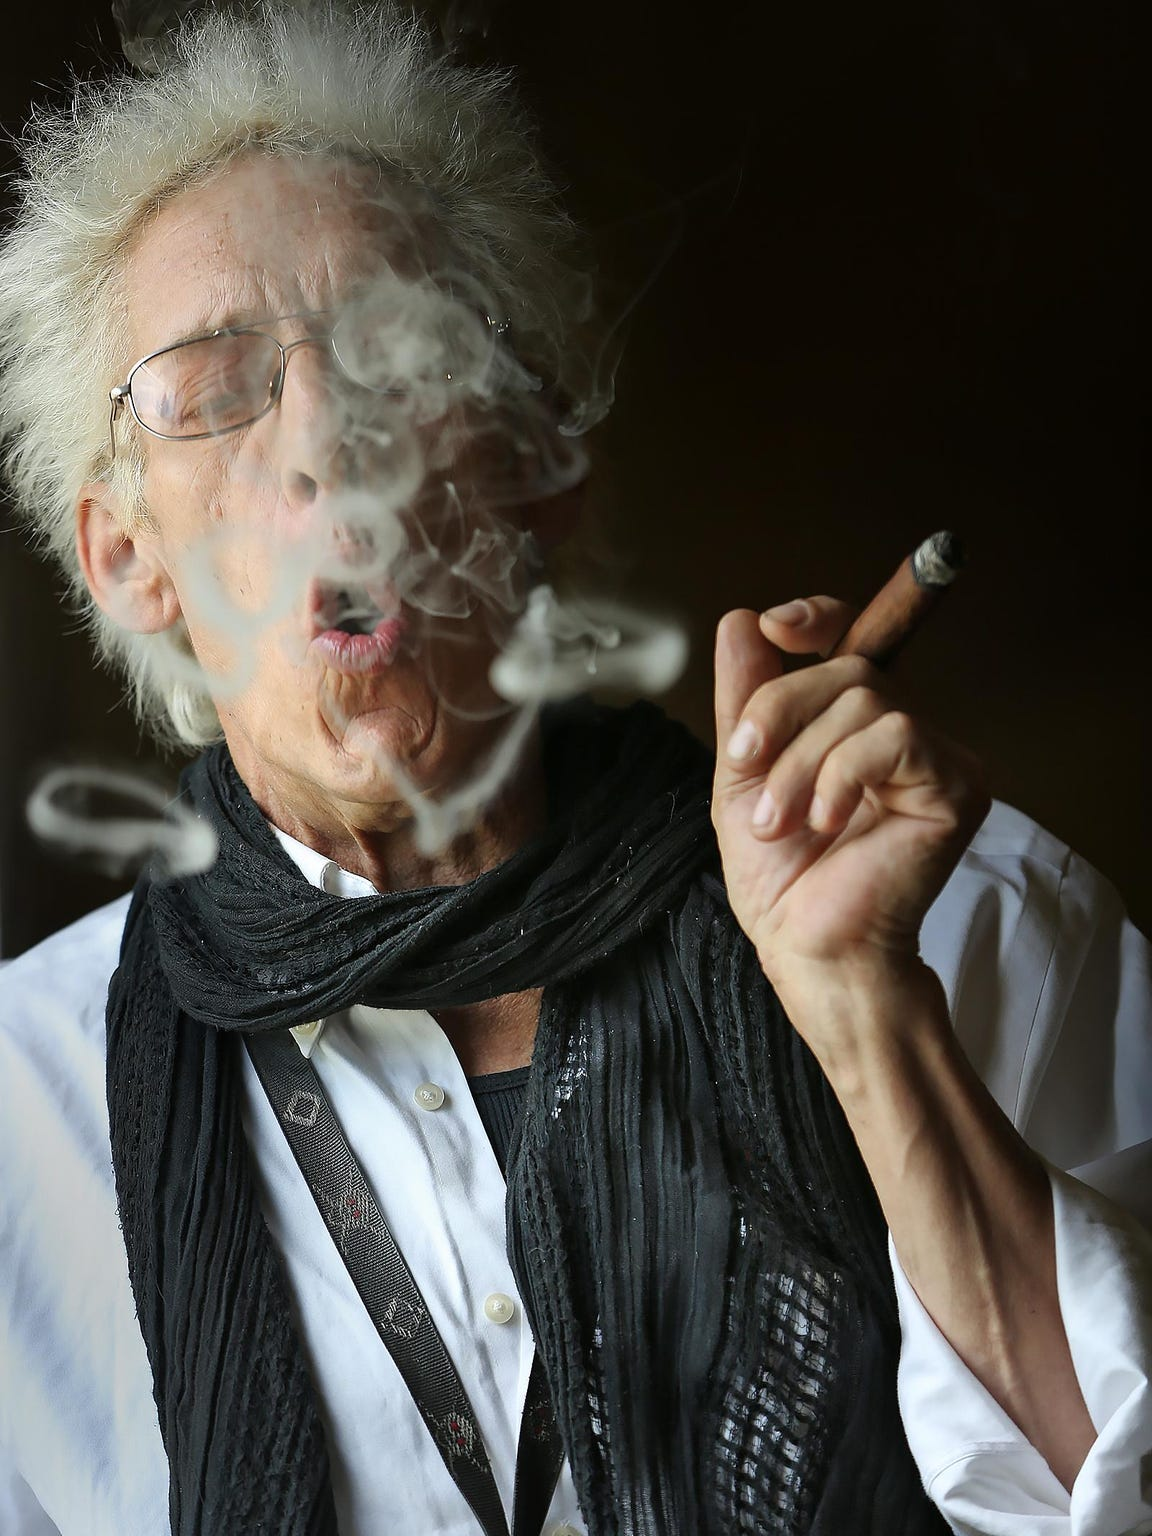 Bill Levin, founder of The First Church of Cannabis.